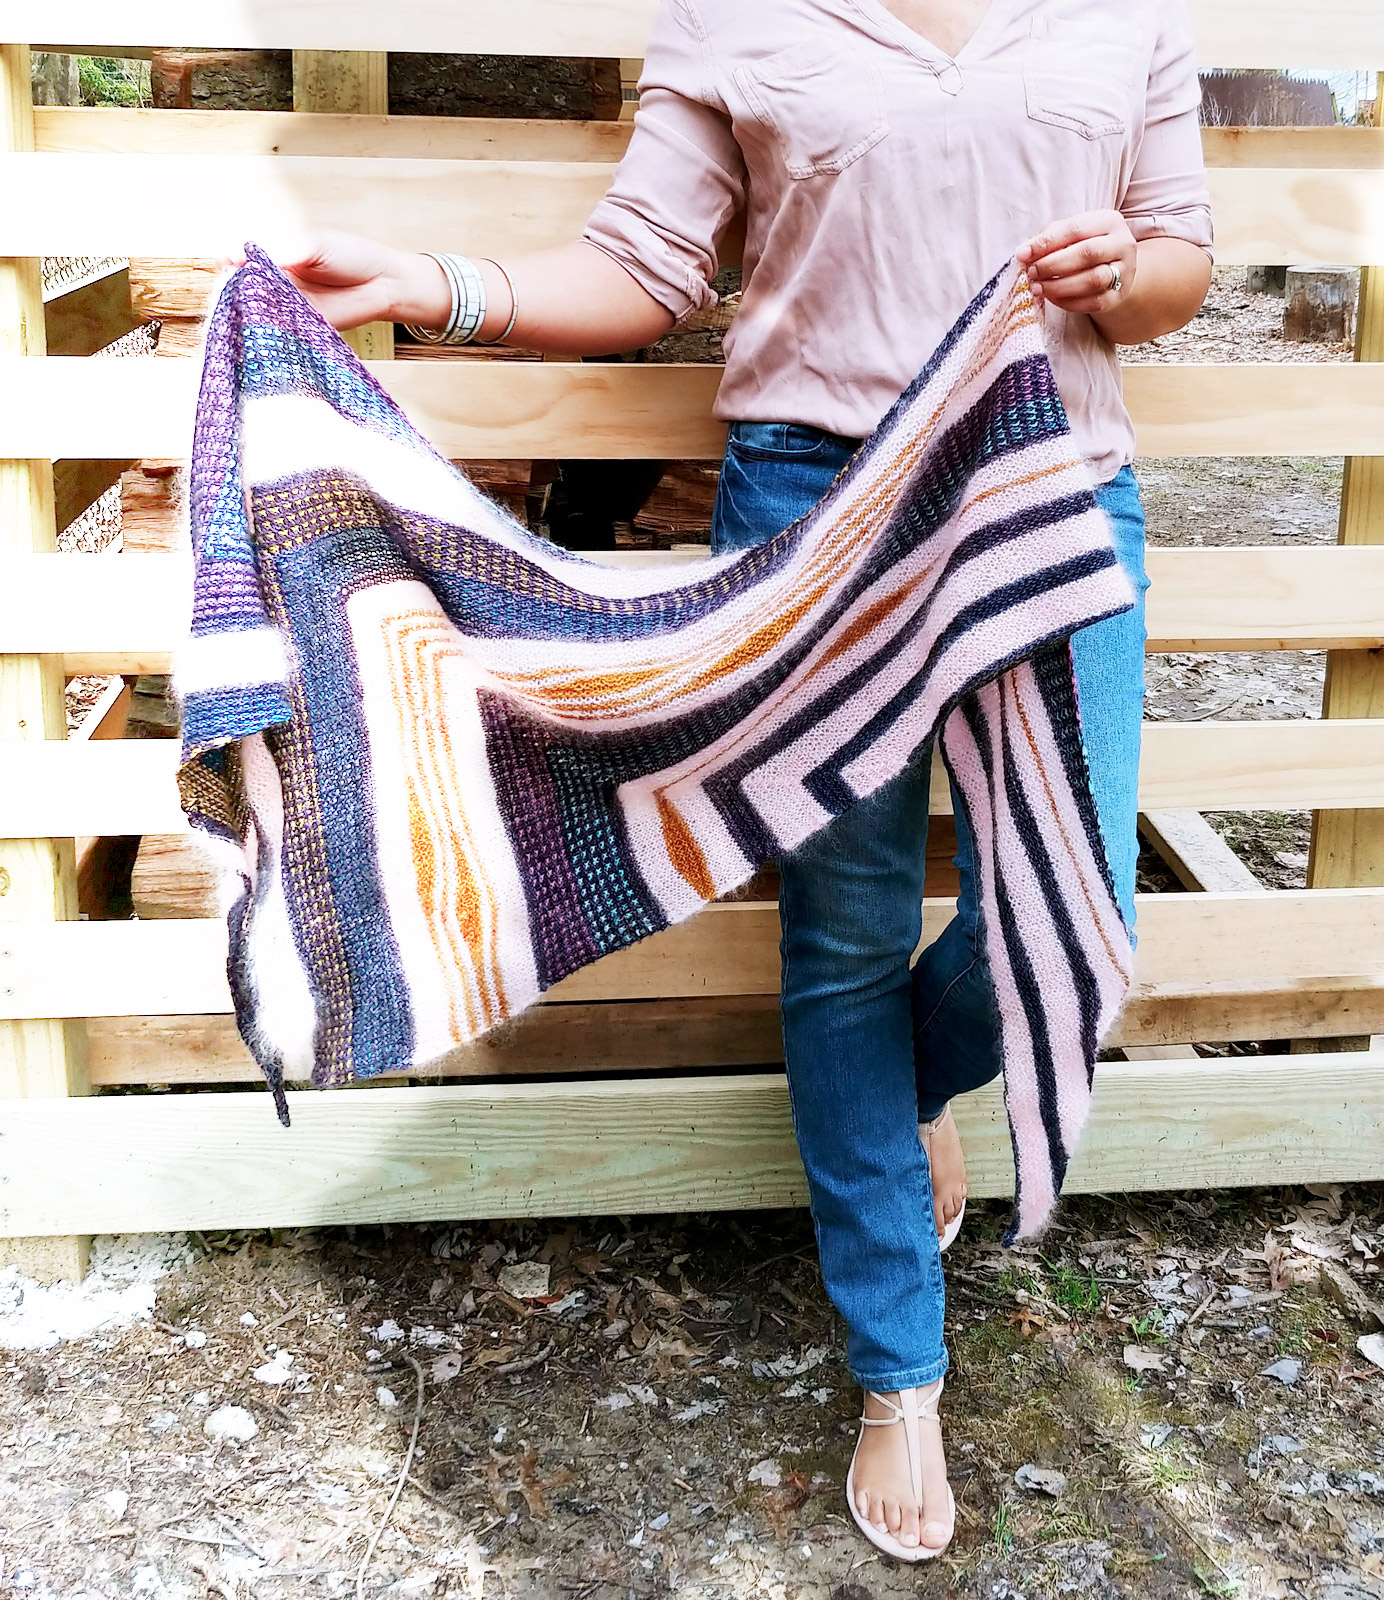 TAMY GOREHarpers Ferry Shawl - Raid your stash - run to your LYS, this is just one of the gorgeous patterns Tamy has on Ravelry. On-trend in Merino and Mohair. $6.50